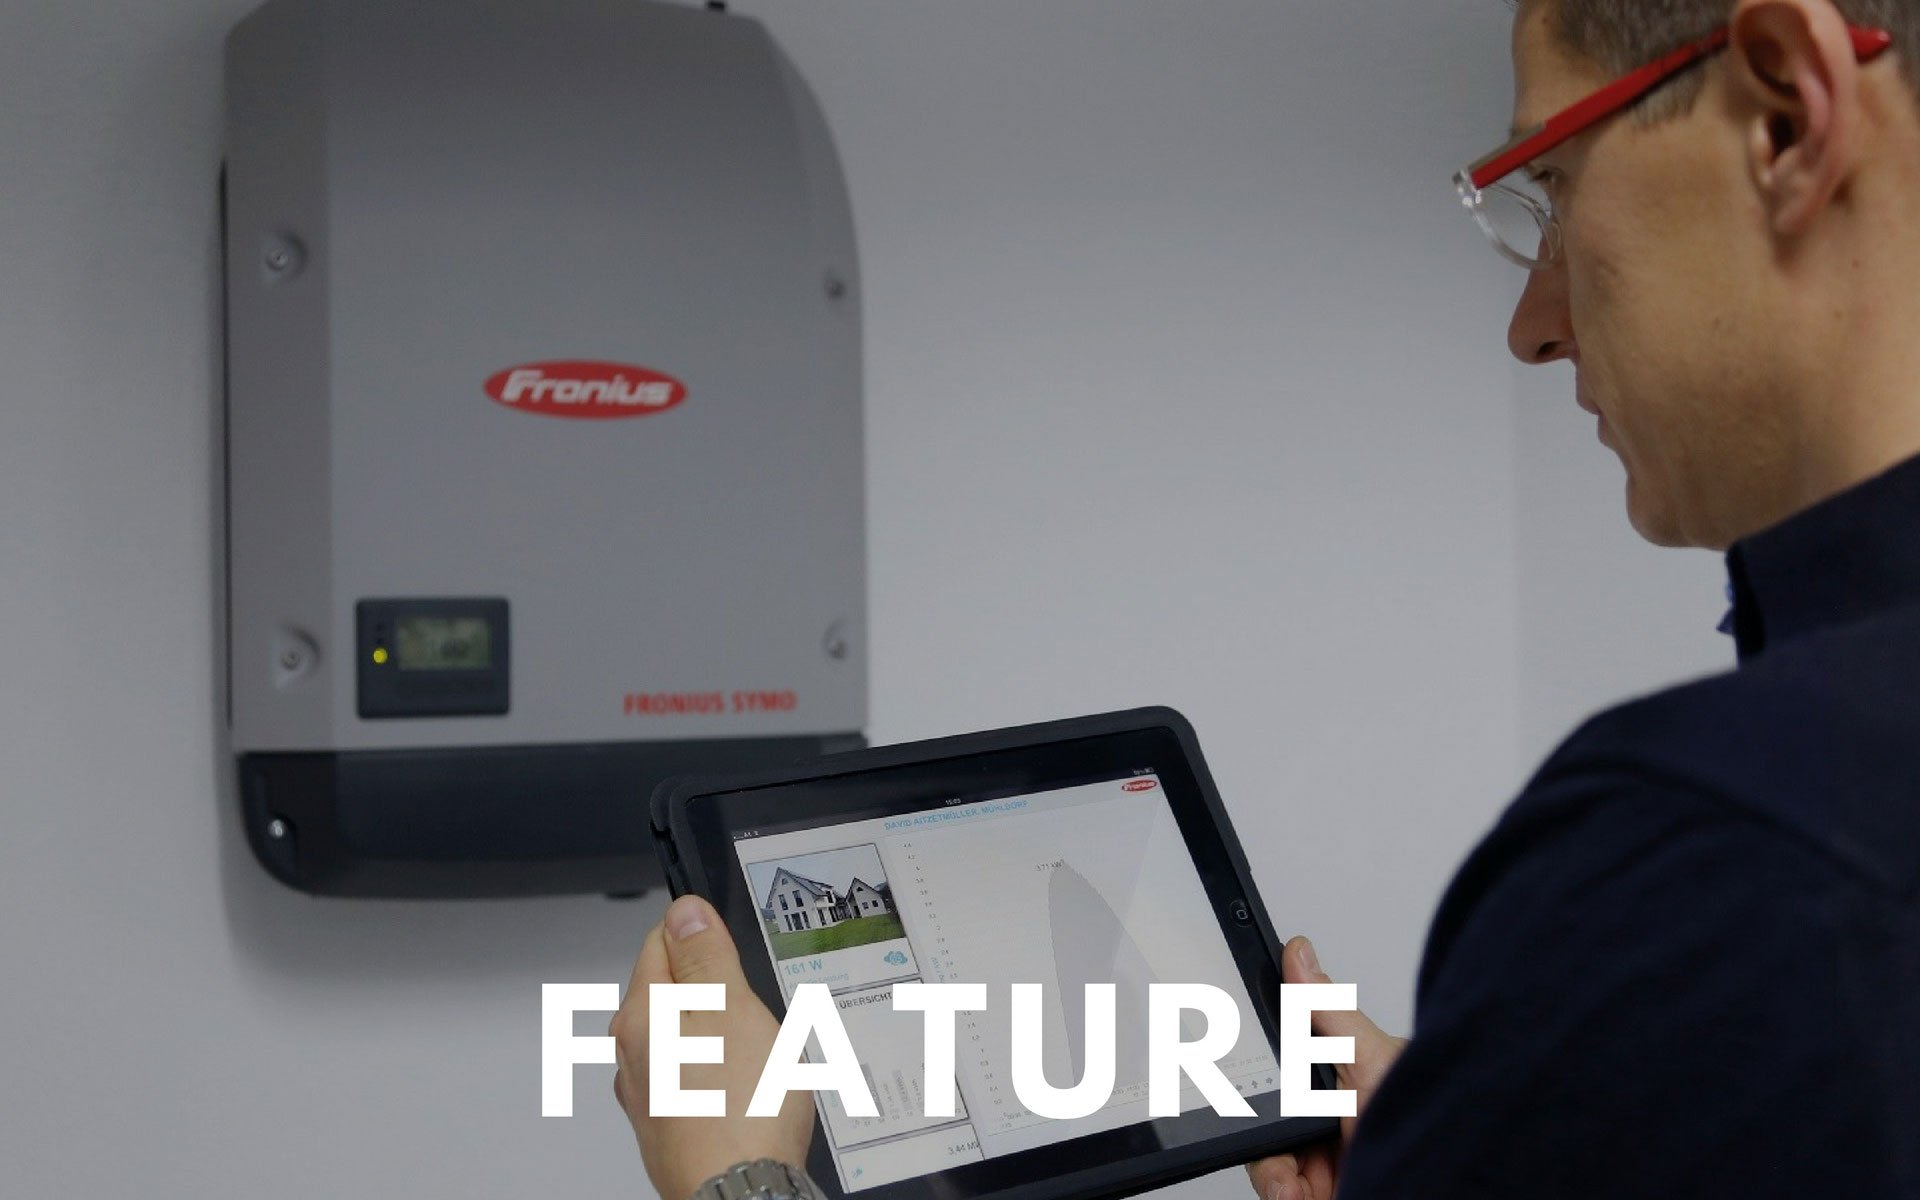 5 Reasons Why You Need A Fronius Smart Meter by PSW Energy (Perth Solar Warehouse)